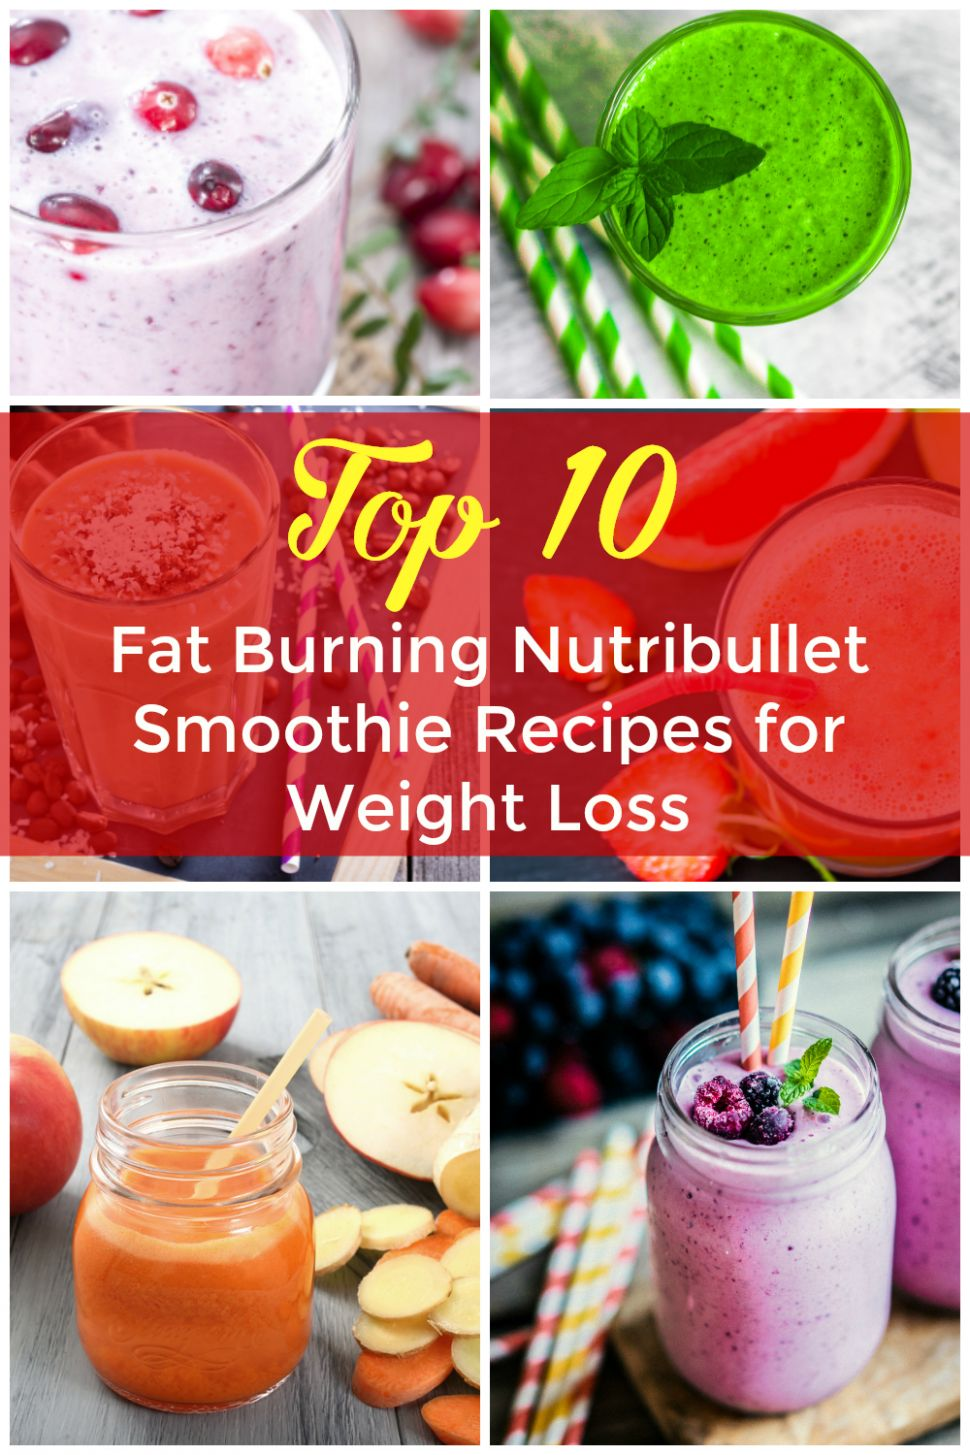 Top 11 Diet Nutribullet Smoothie Recipes - All Nutribullet Recipes - Smoothie Recipes For Weight Loss Lunch